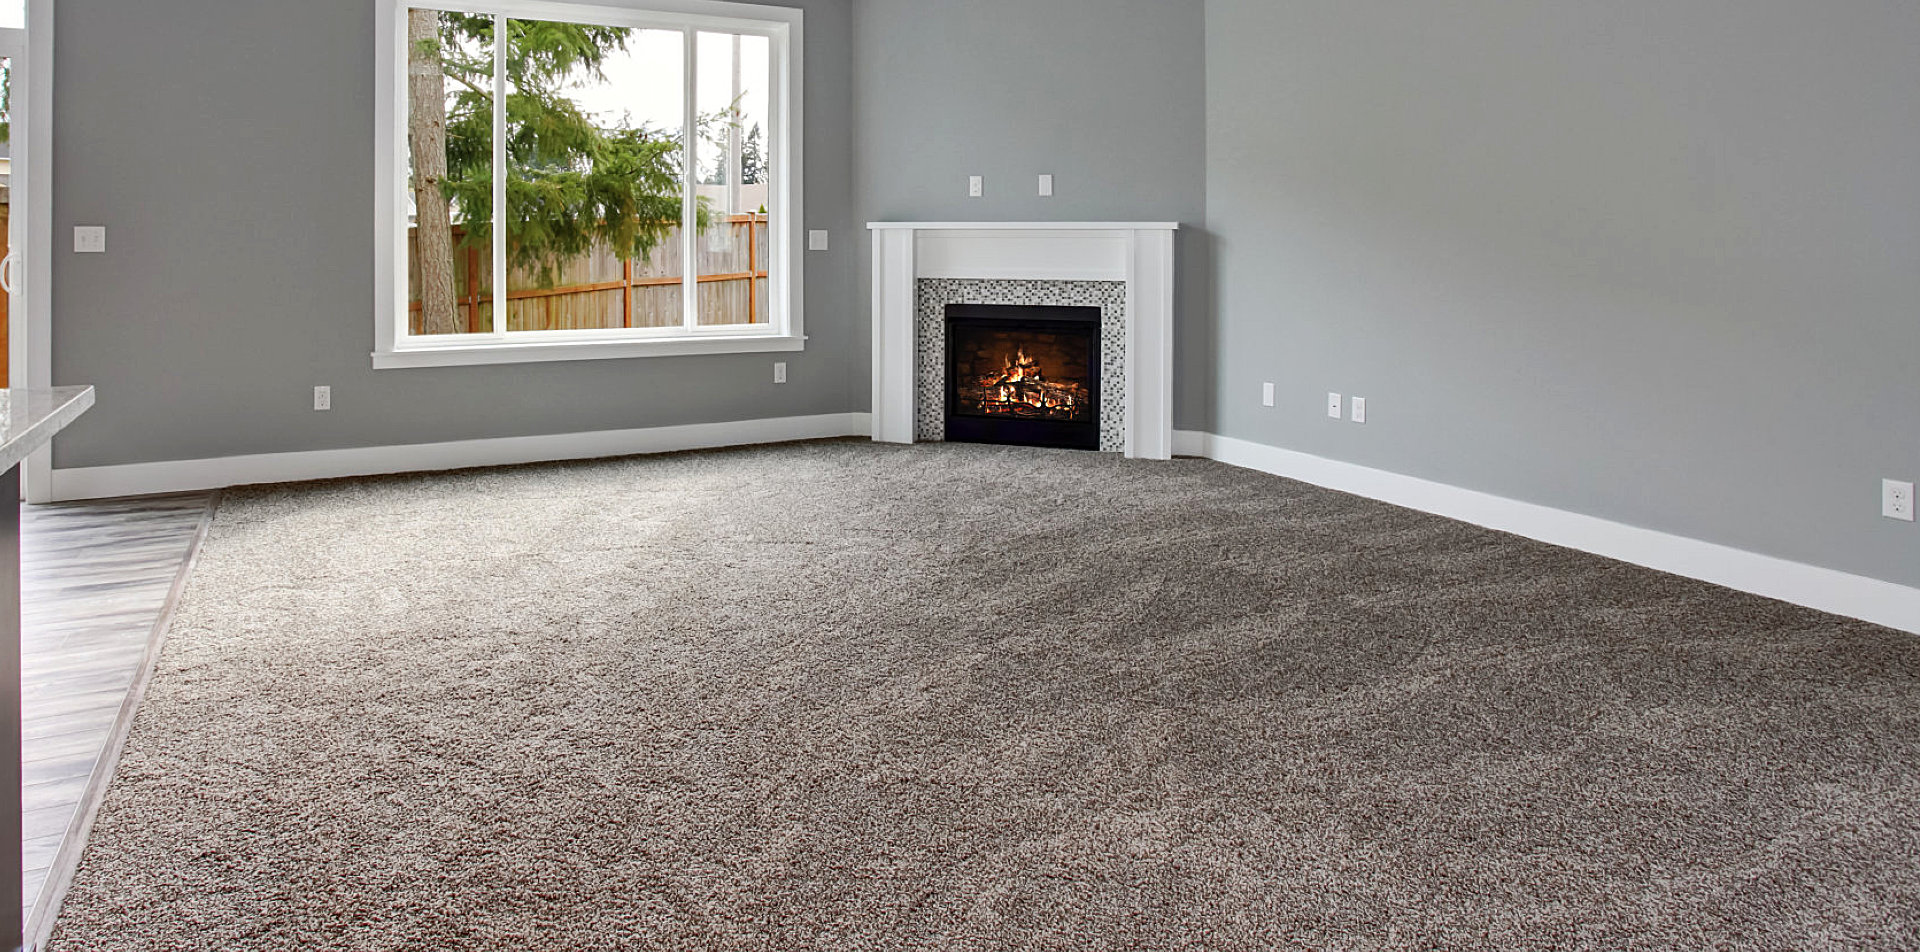 empty living room with a carpeted floor